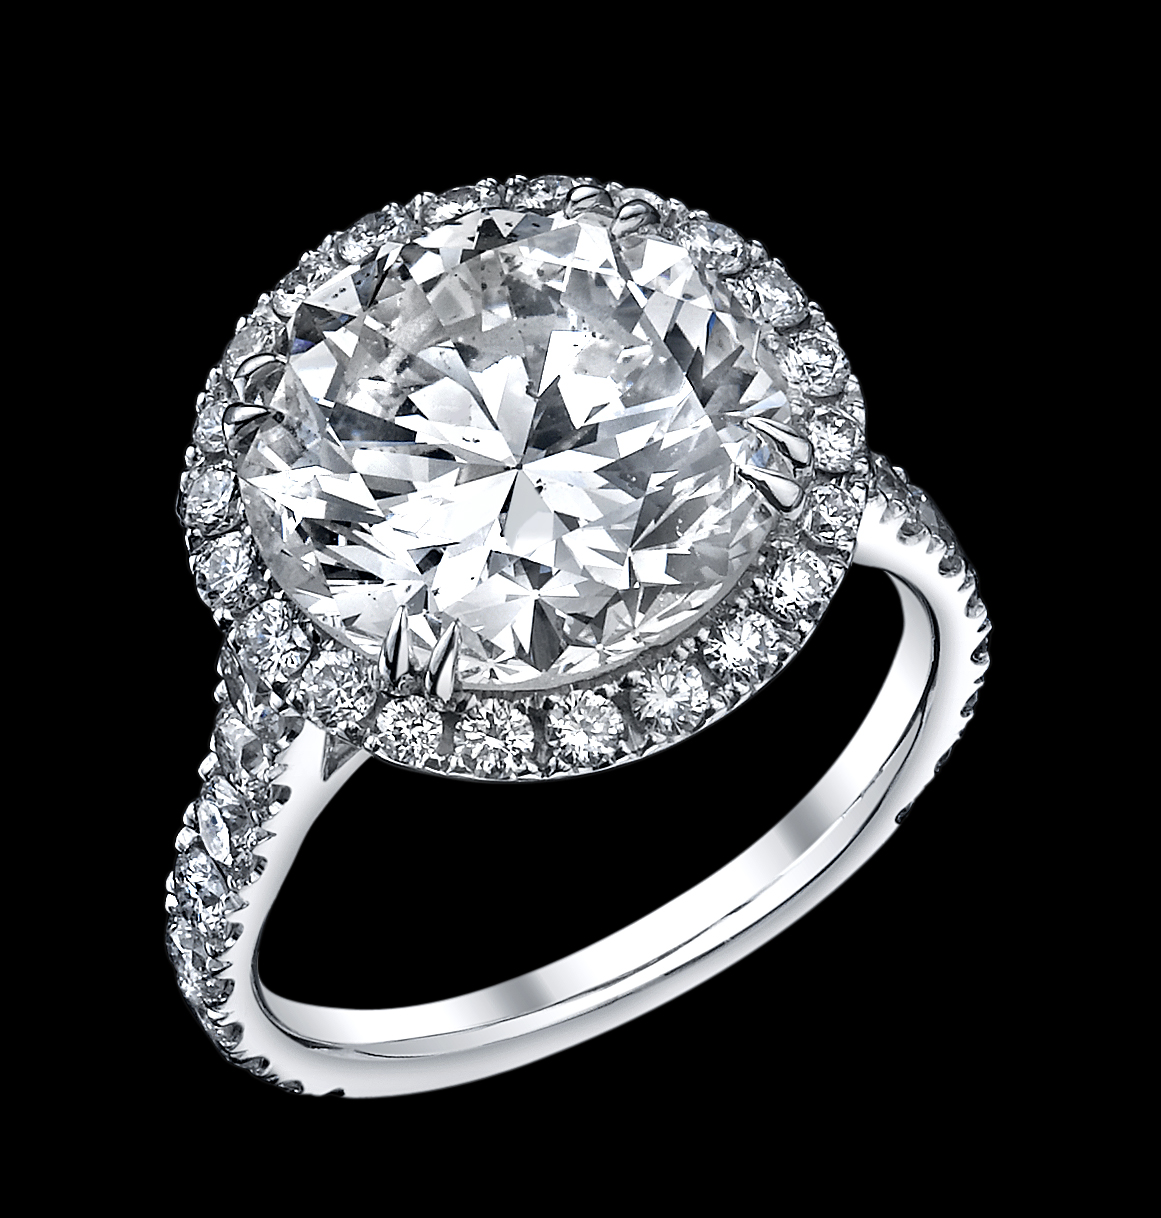 Diamonds Jewellery: Hottest Pictures & Wallpapers